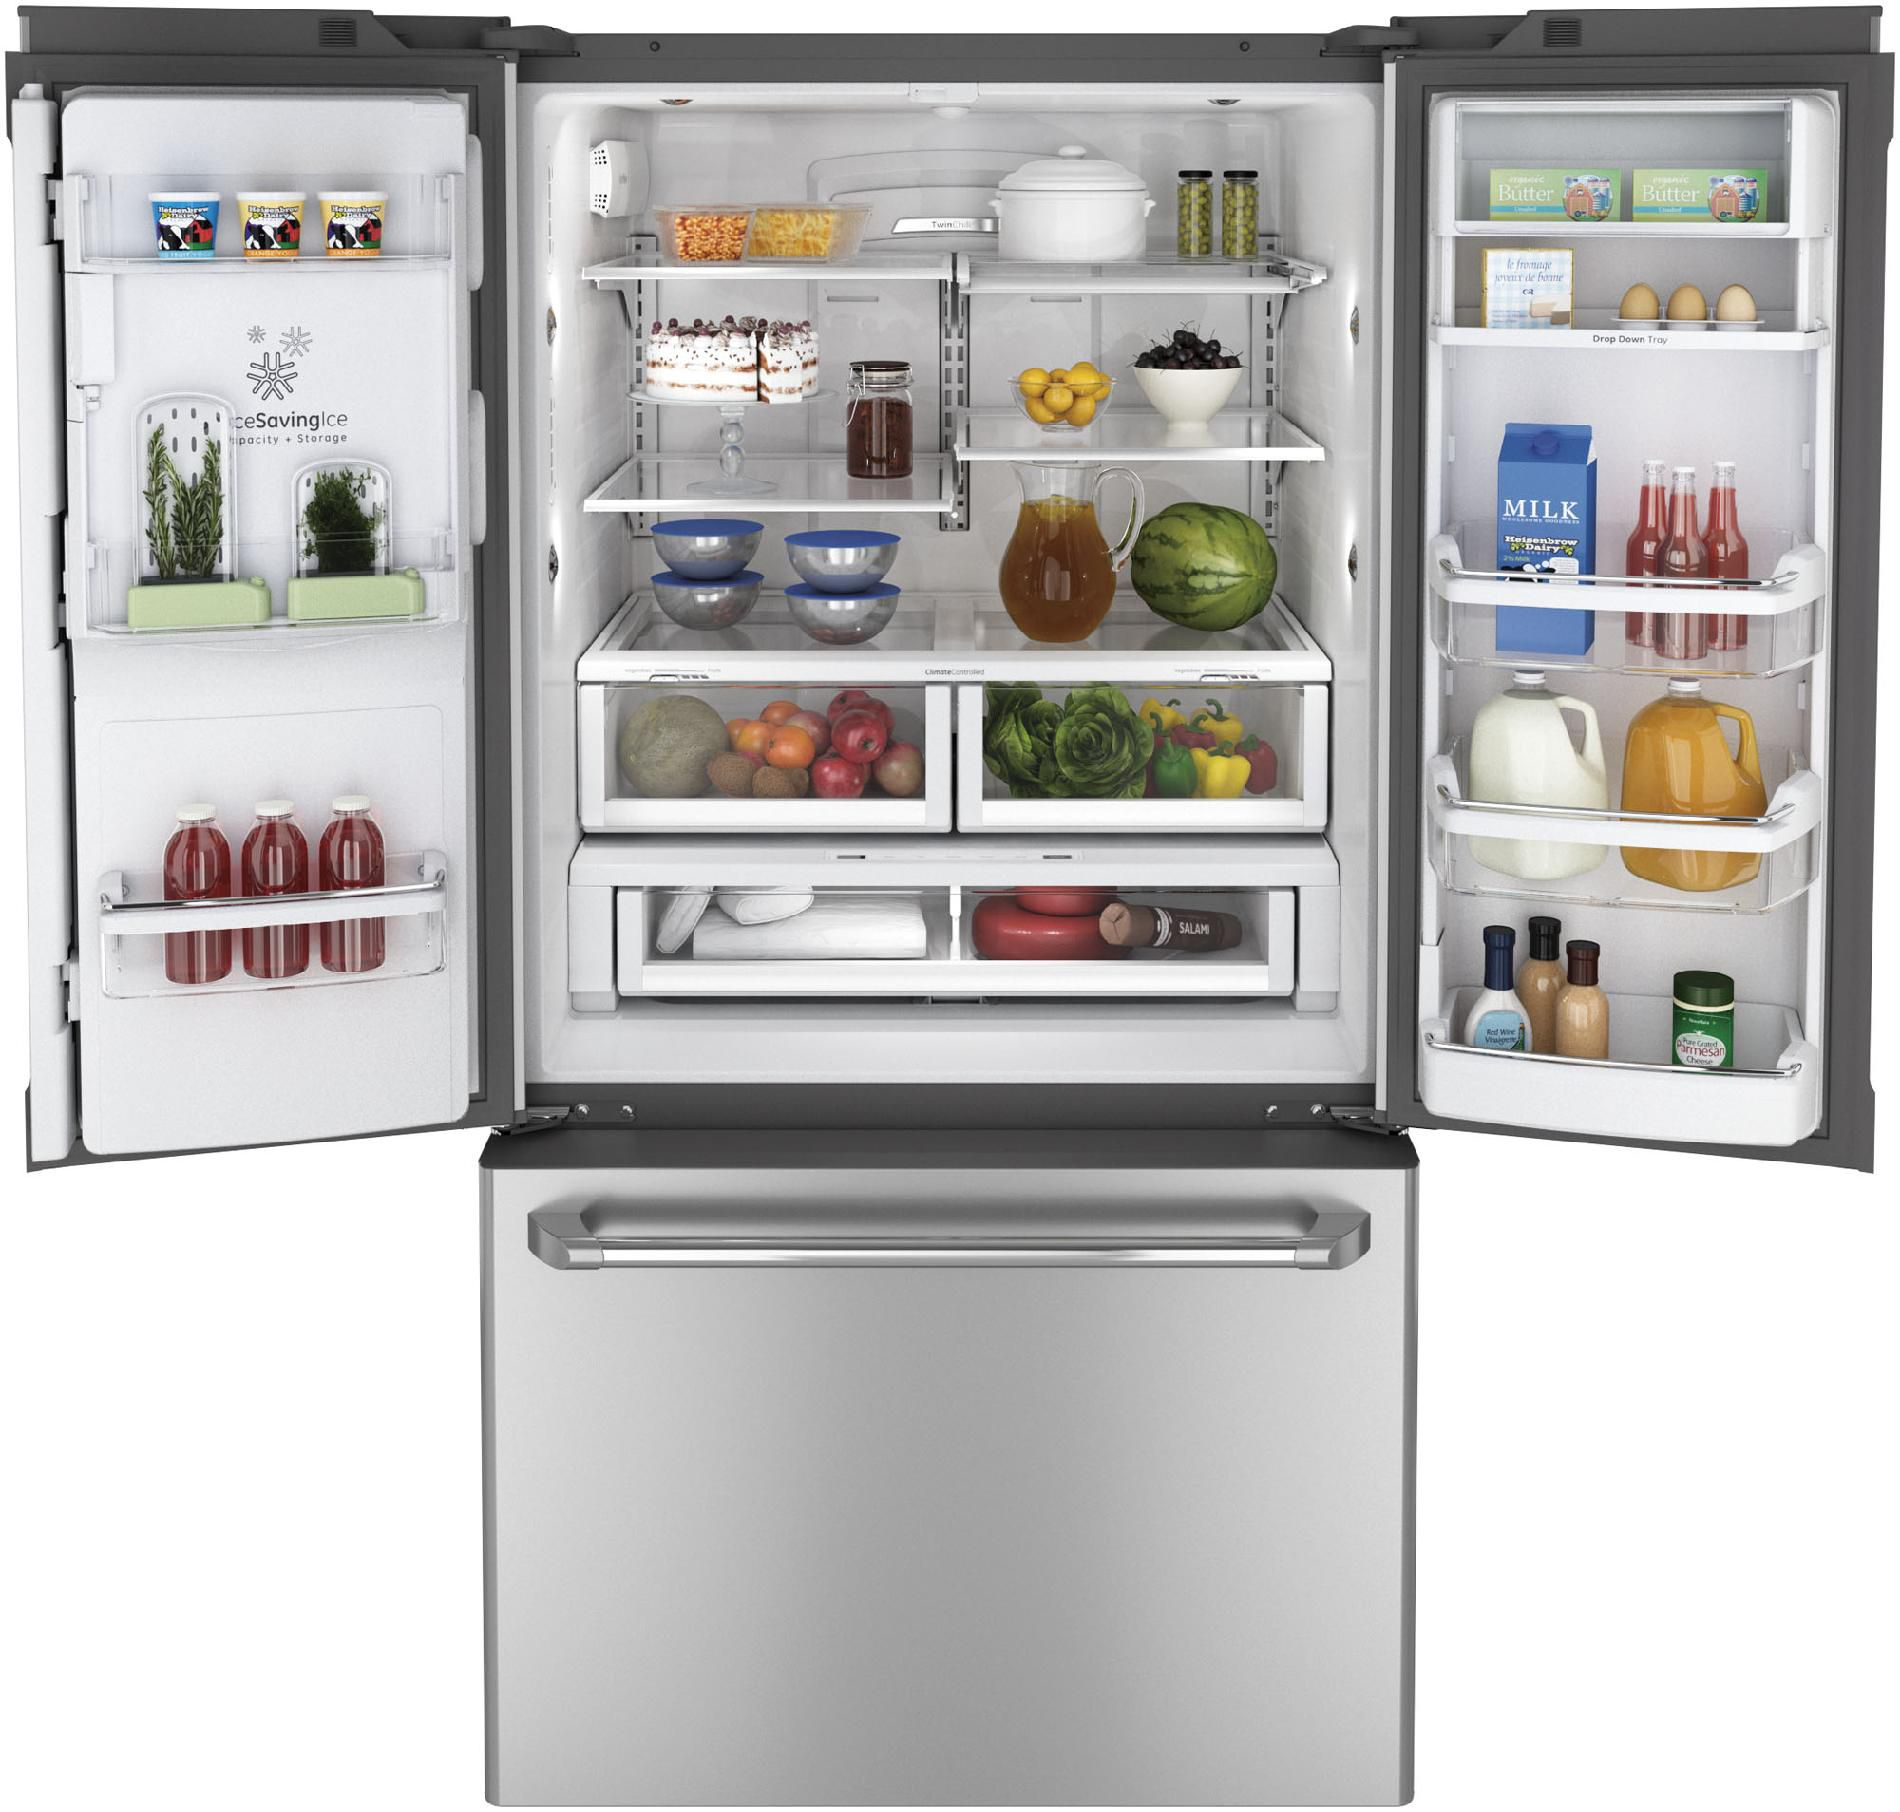 GE Café 23.1 cu. ft. Counter-Depth French Door Refrigerator - Stainless Steel